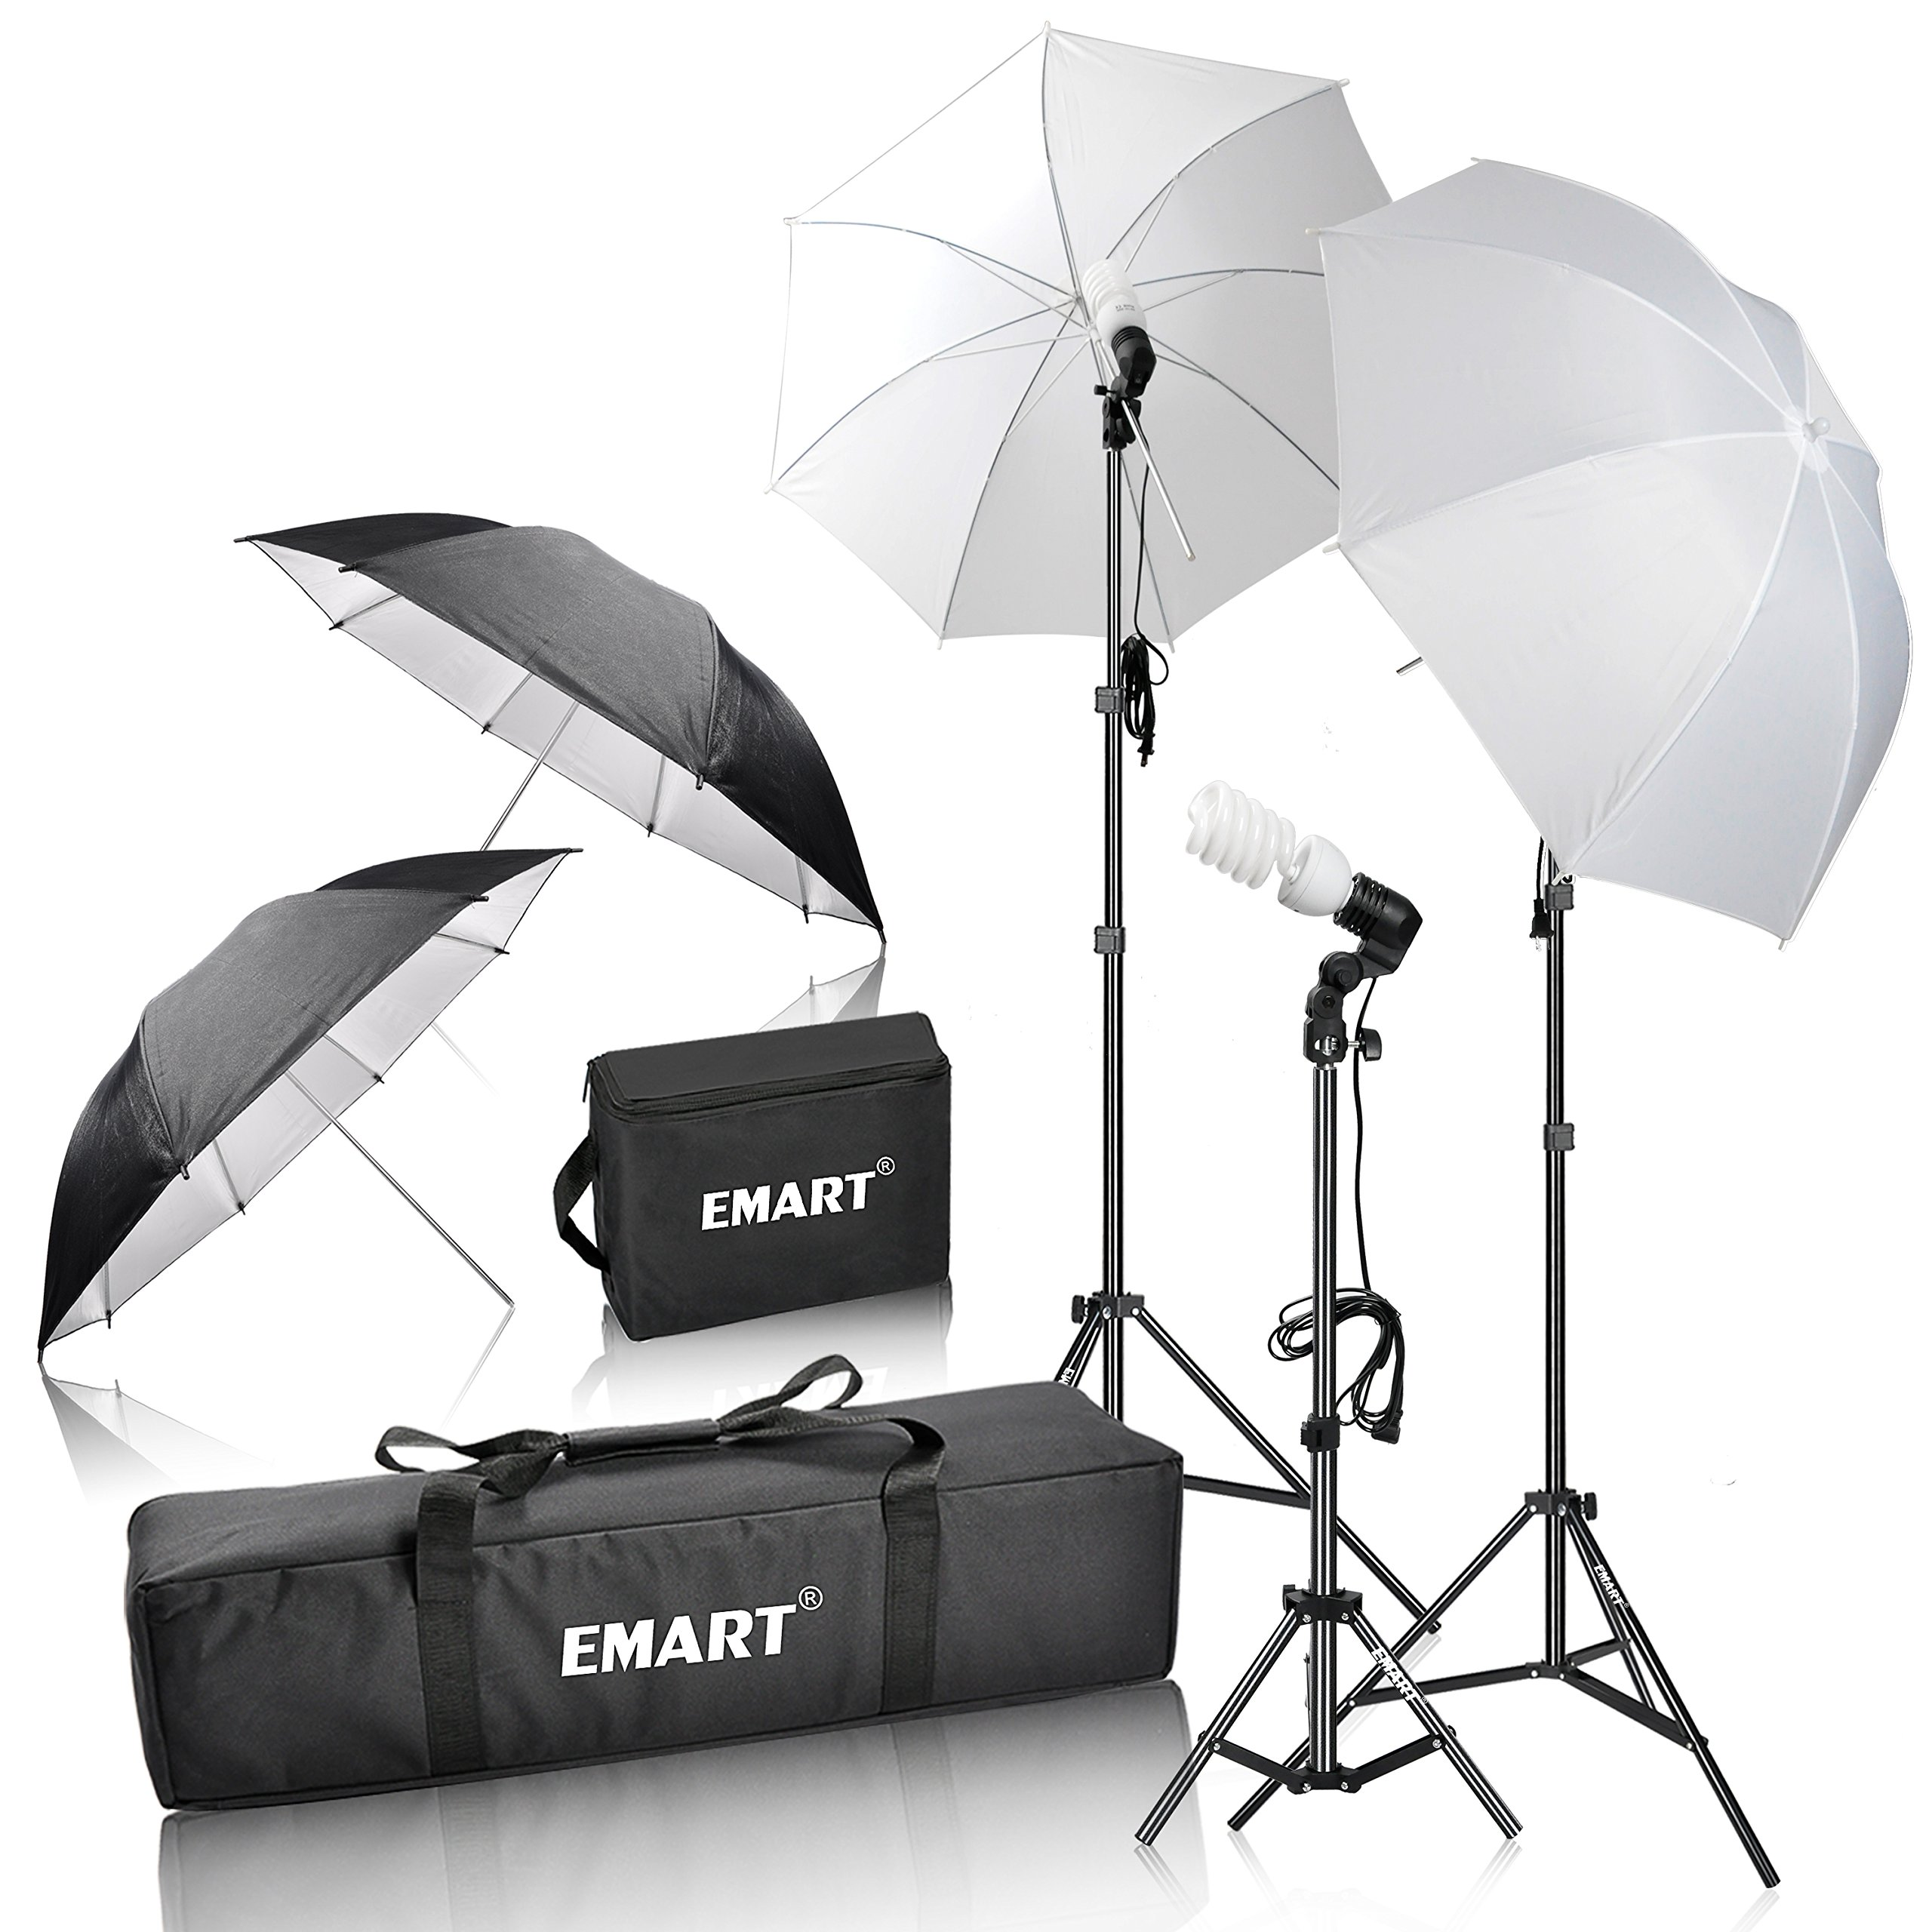 Emart 600W Photography Photo Video Portrait Studio Day Light Umbrella Continuous Lighting Kit by EMART